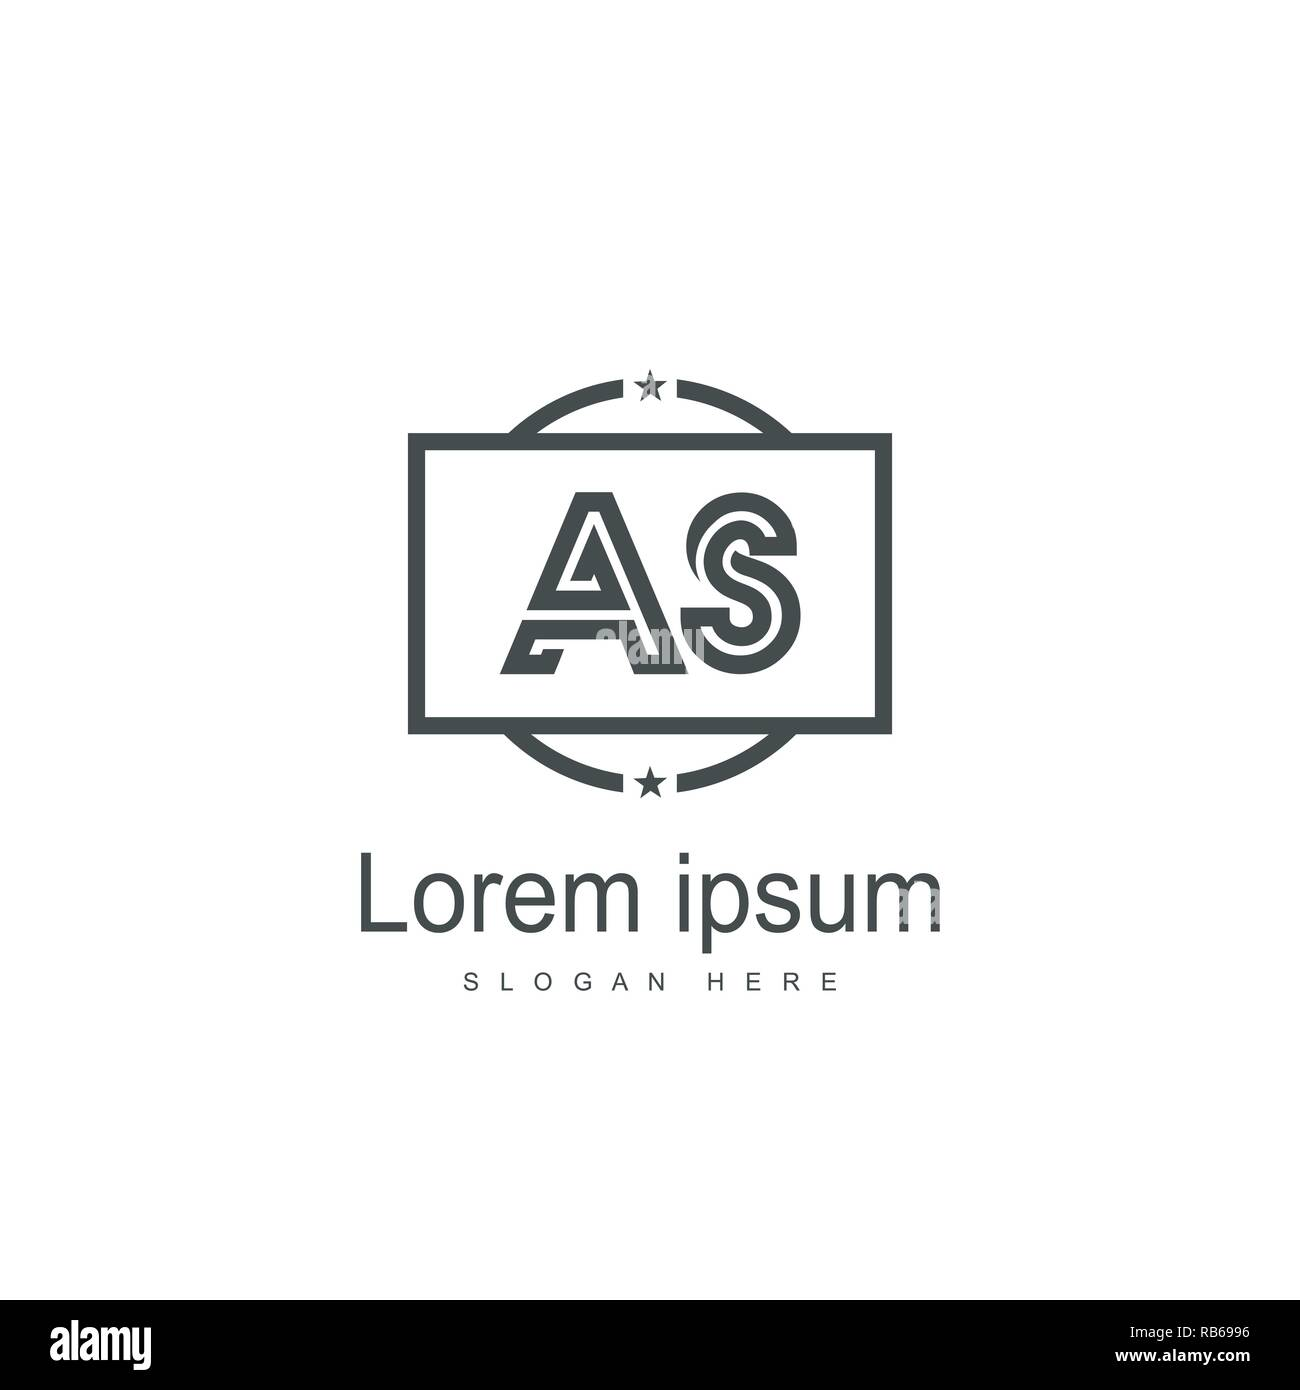 AS Letters Logo Design. Simple and Creative Black Letter Concept Illustration. - Stock Vector